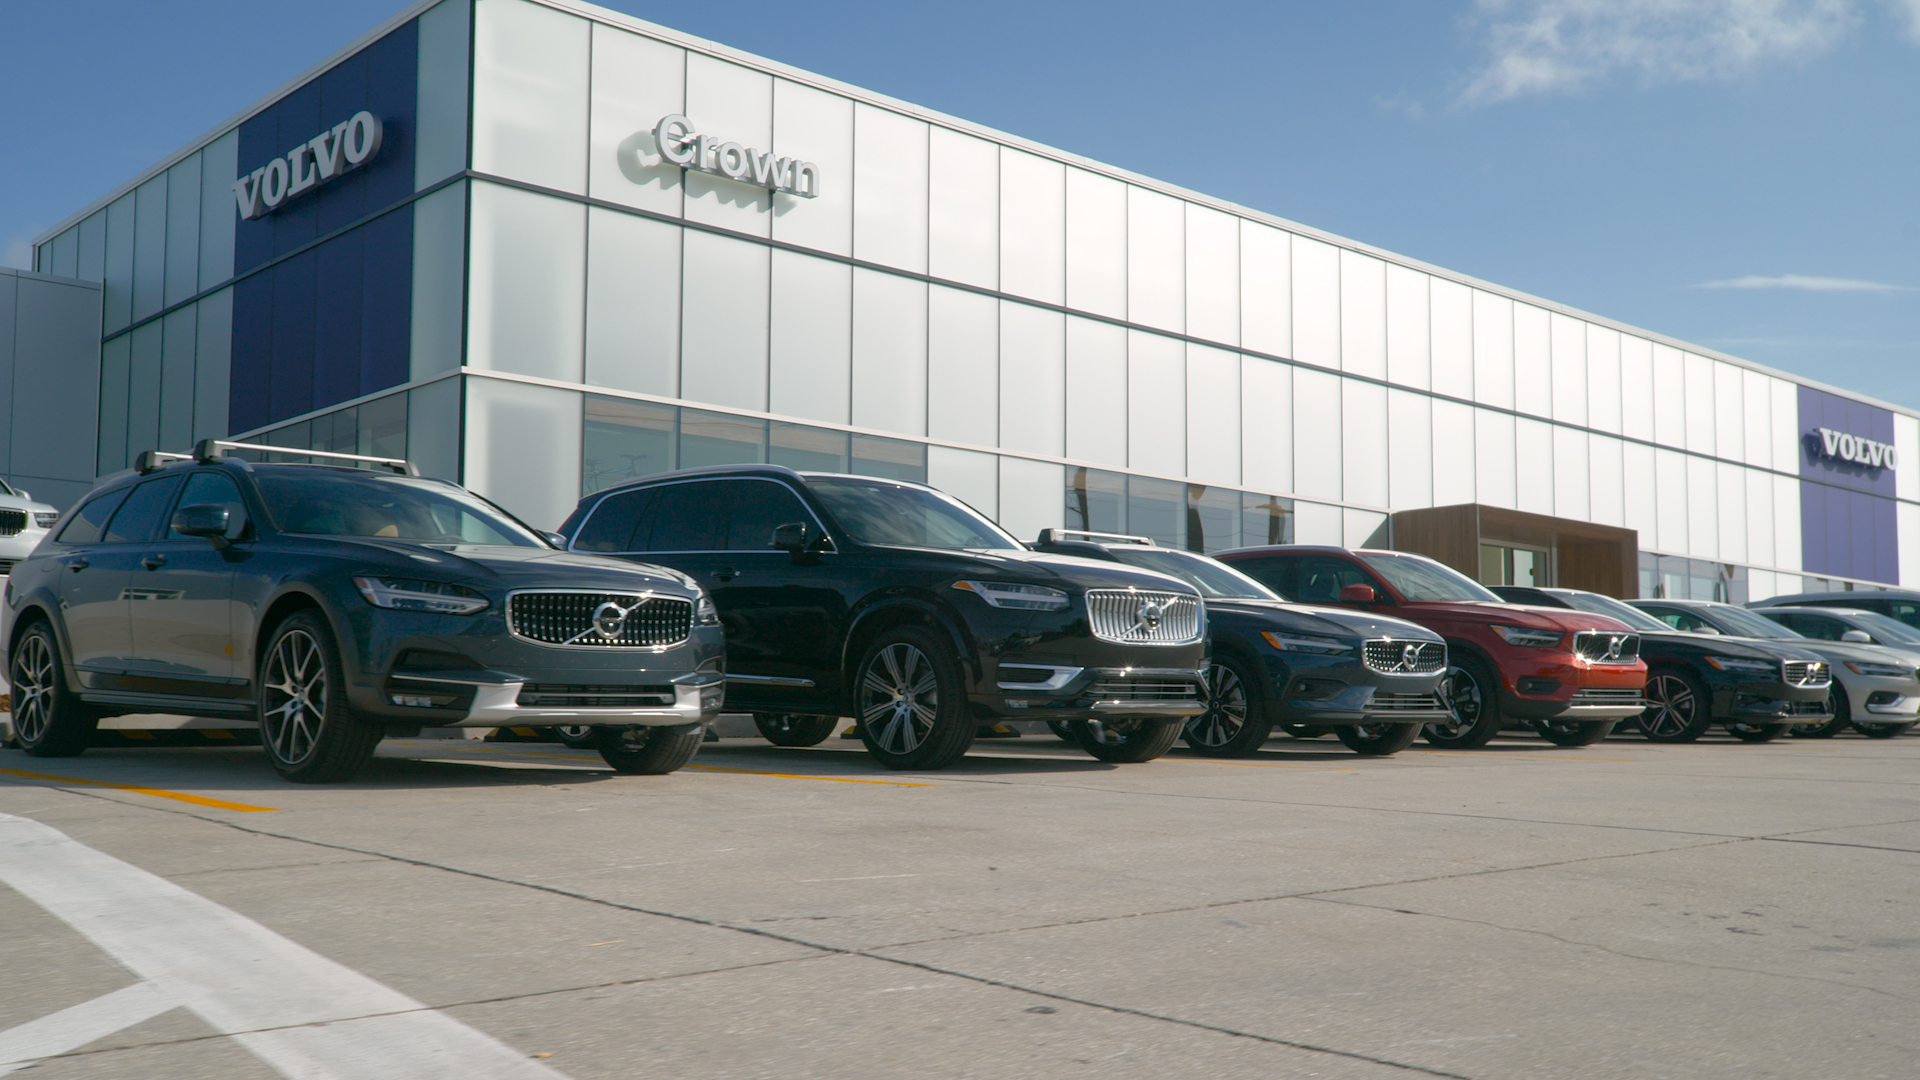 Volvo shows an incline in sales figure